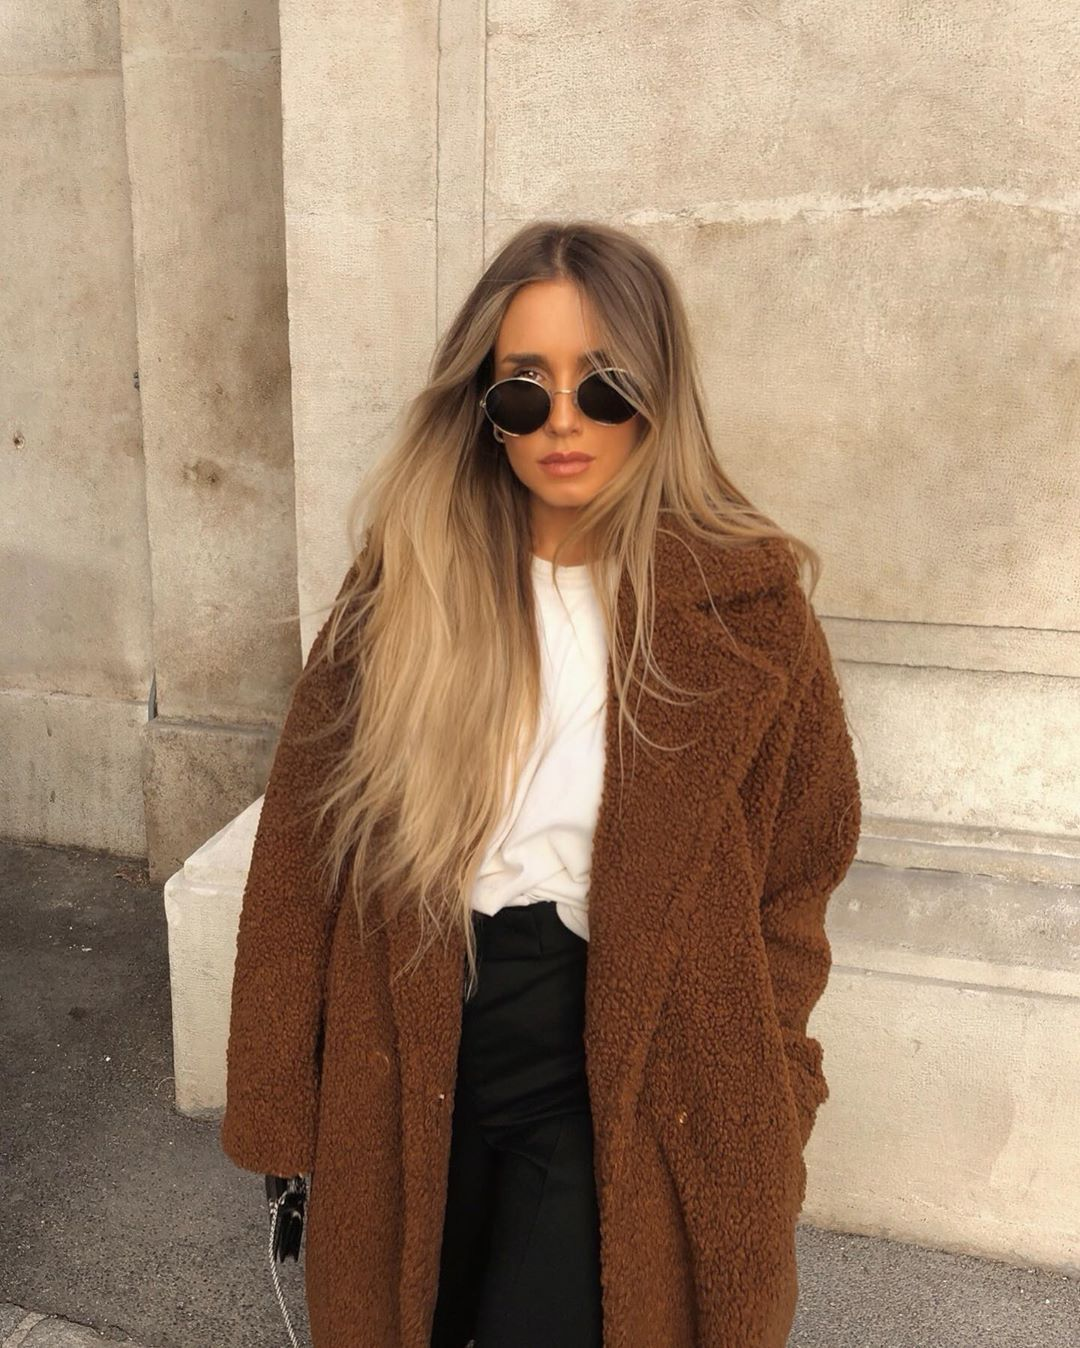 Hristina On Instagram I Basically Have 3 Hairstyles Straight Wavy Or Homeless Fashion Style Outfit Inspirations